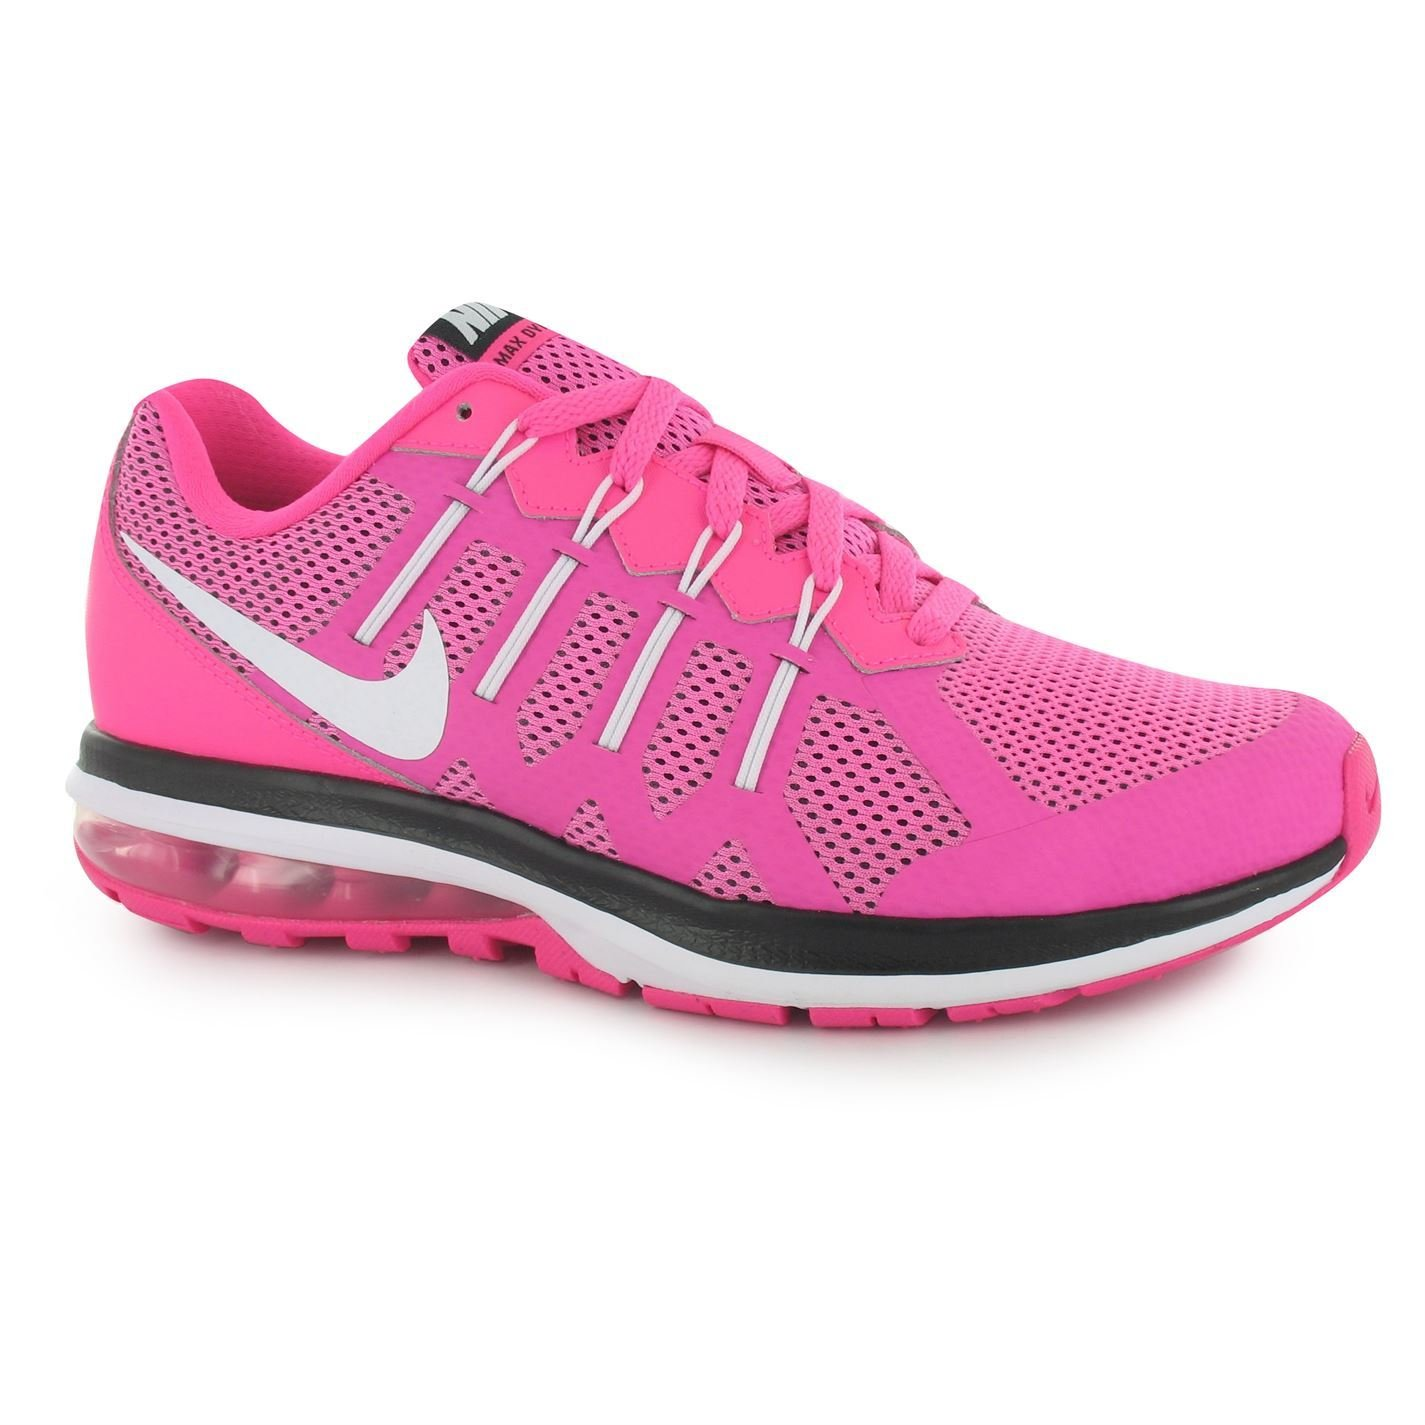 Nike Air Max Dynasty Training Shoes Womens Pink Wht Fitness Trainers  Sneakers (UK7) (EU41) (US9.5)  Amazon.co.uk  Sports   Outdoors 736a07323